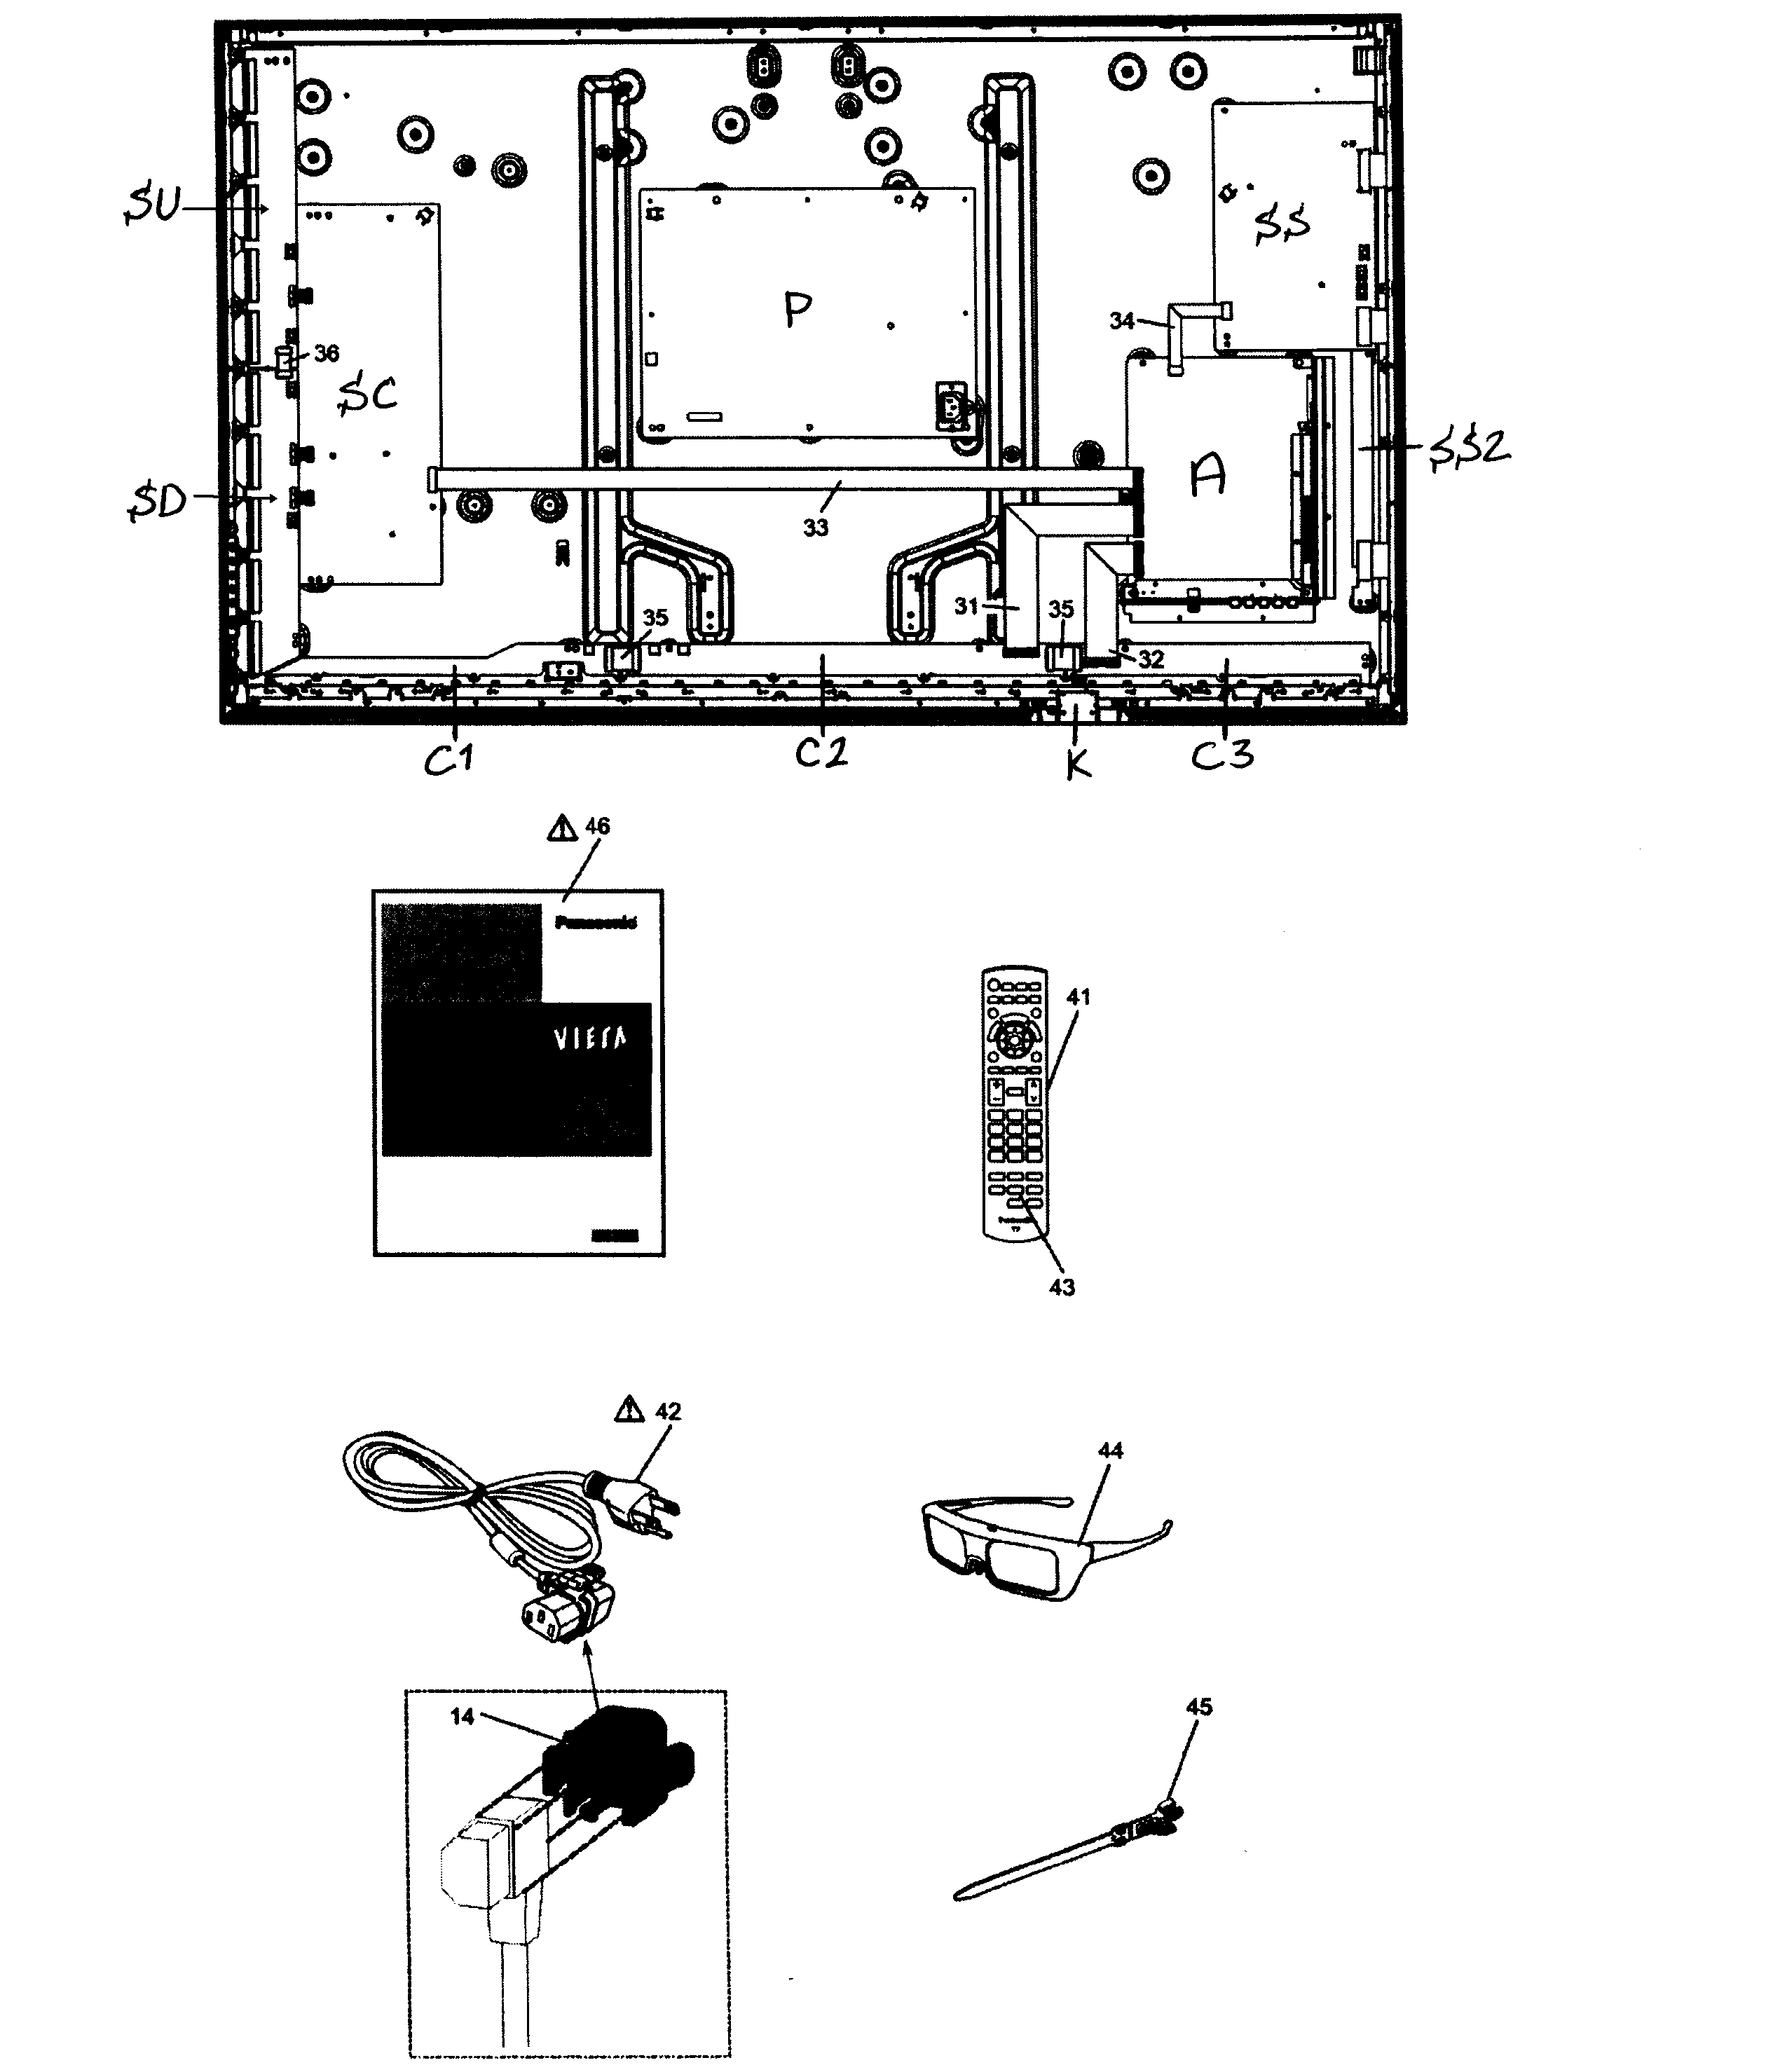 diagram panasonic tc p42x3x